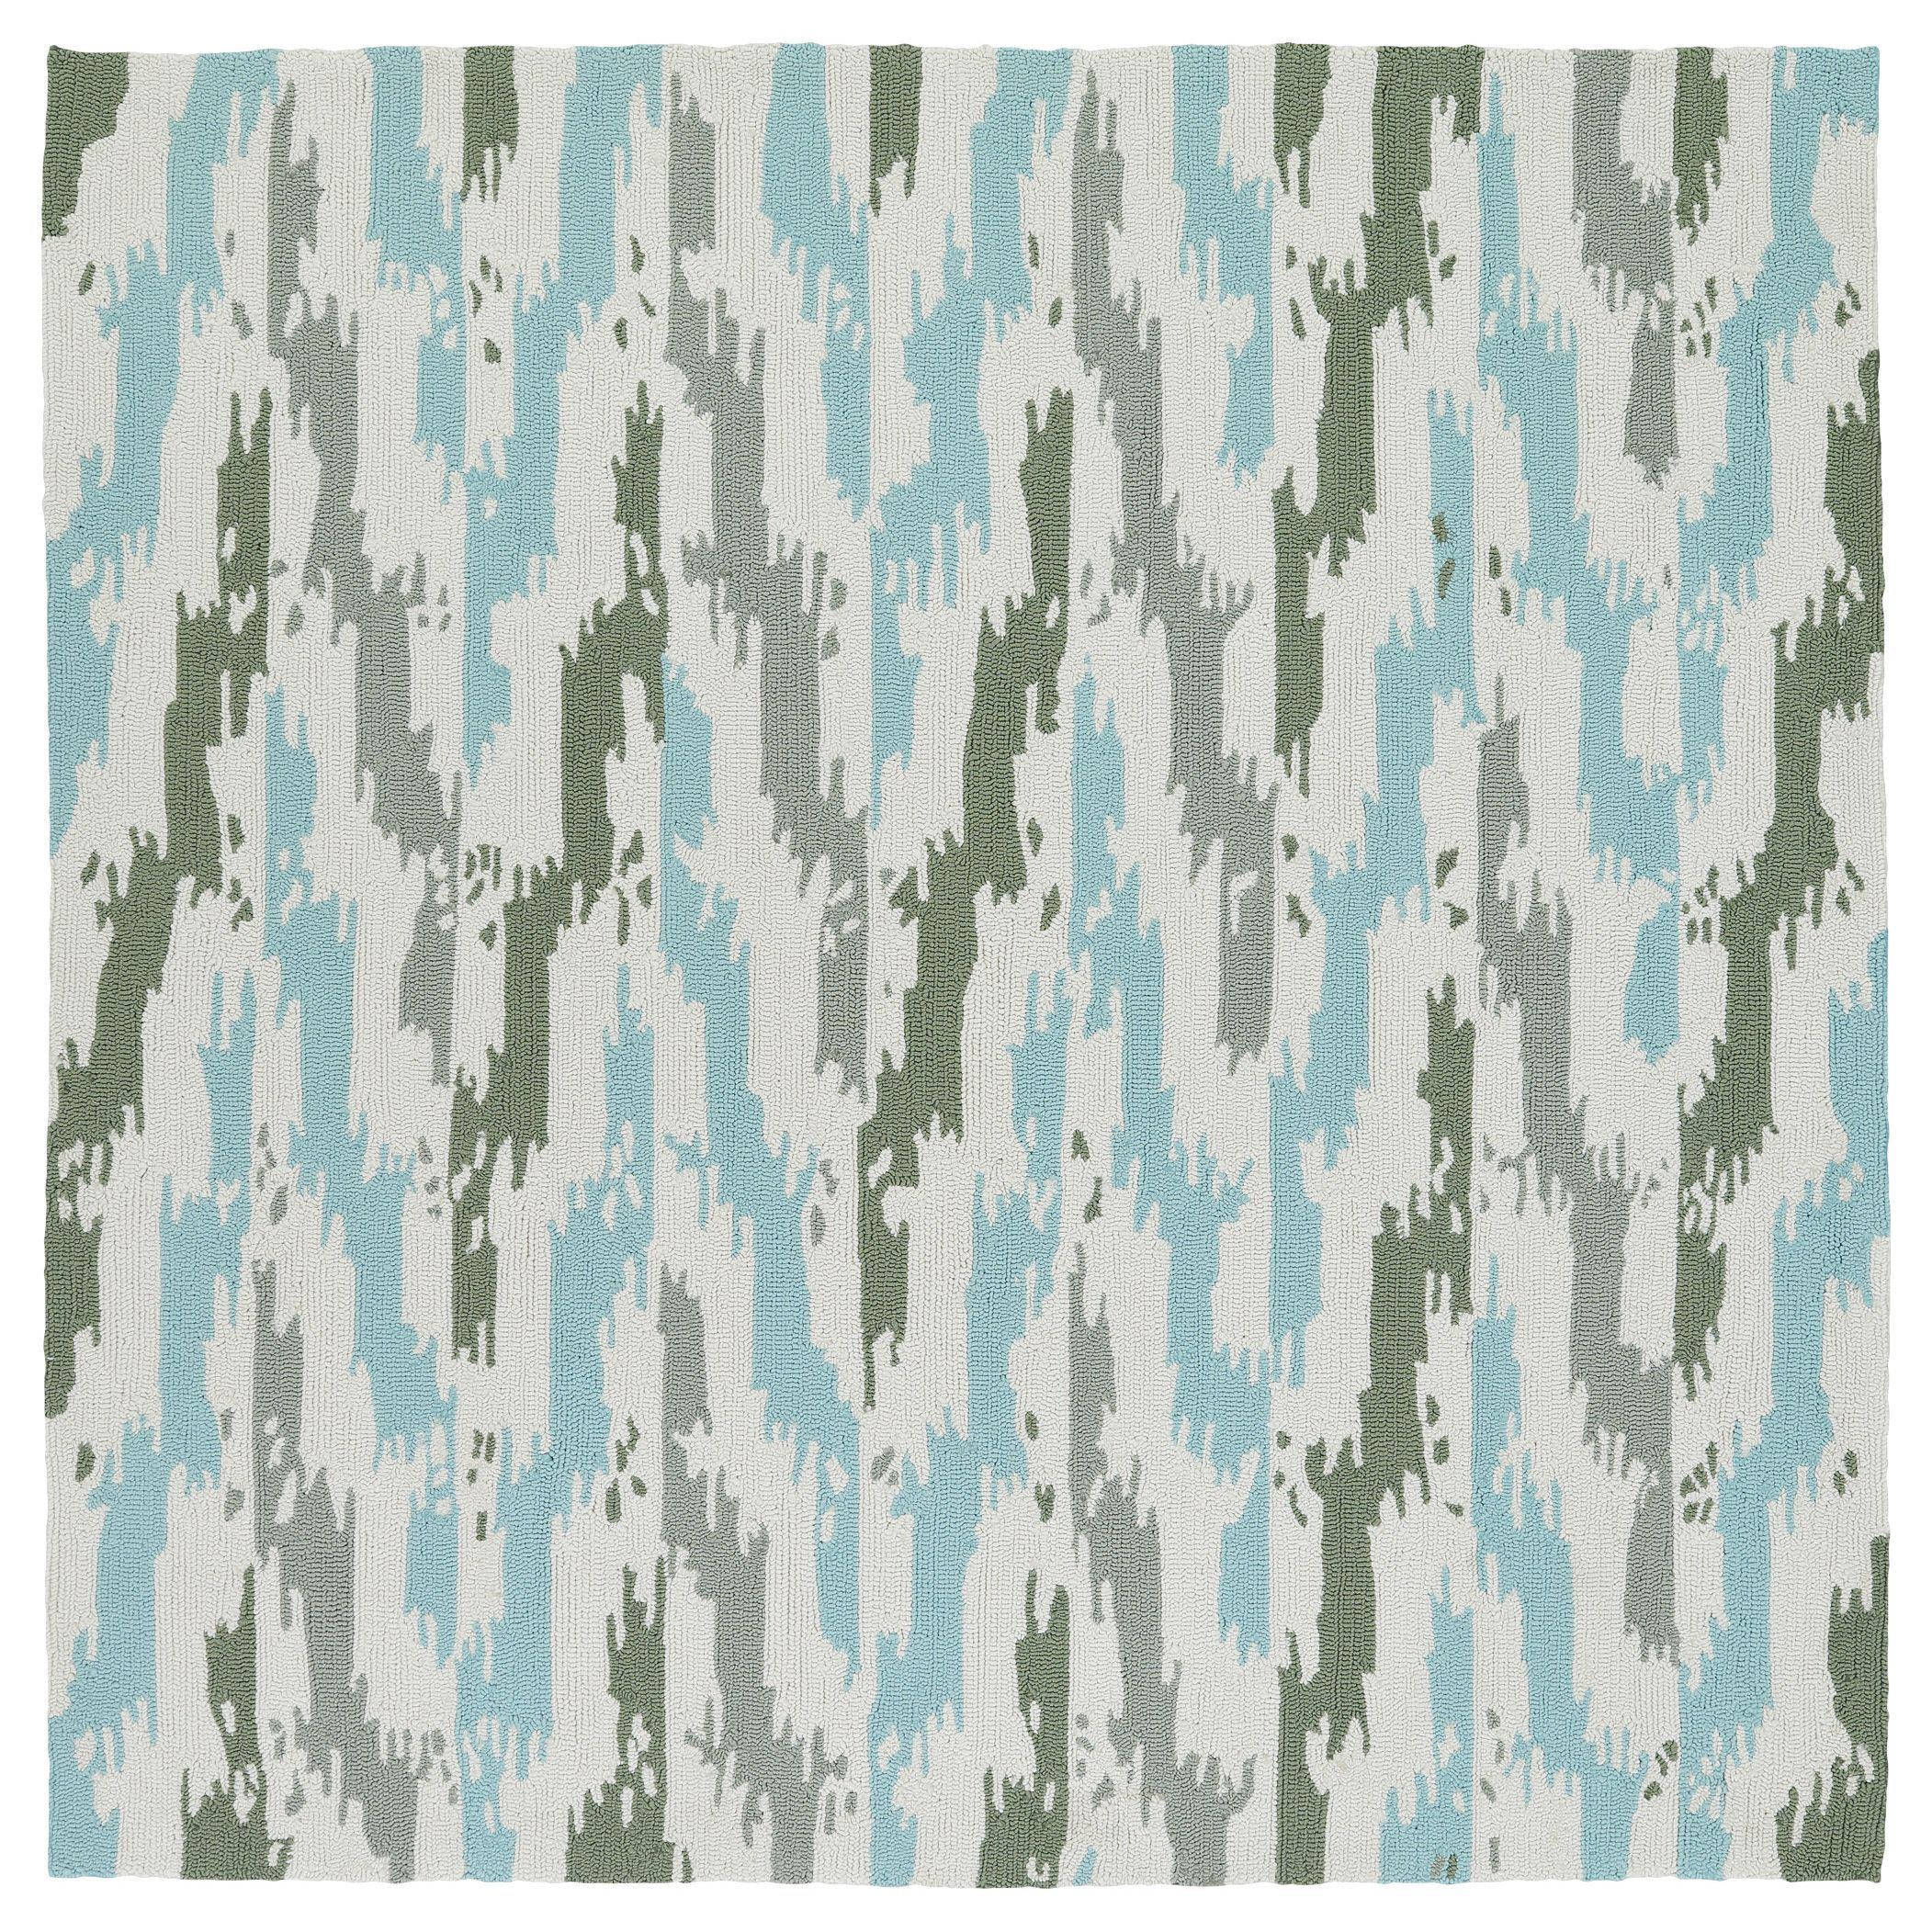 Seaside ivory and blue ikat indooroutdoor rug 79 x 79 square seaside ivory and blue ikat indooroutdoor rug 79 x 79 square by bombay home baanklon Gallery